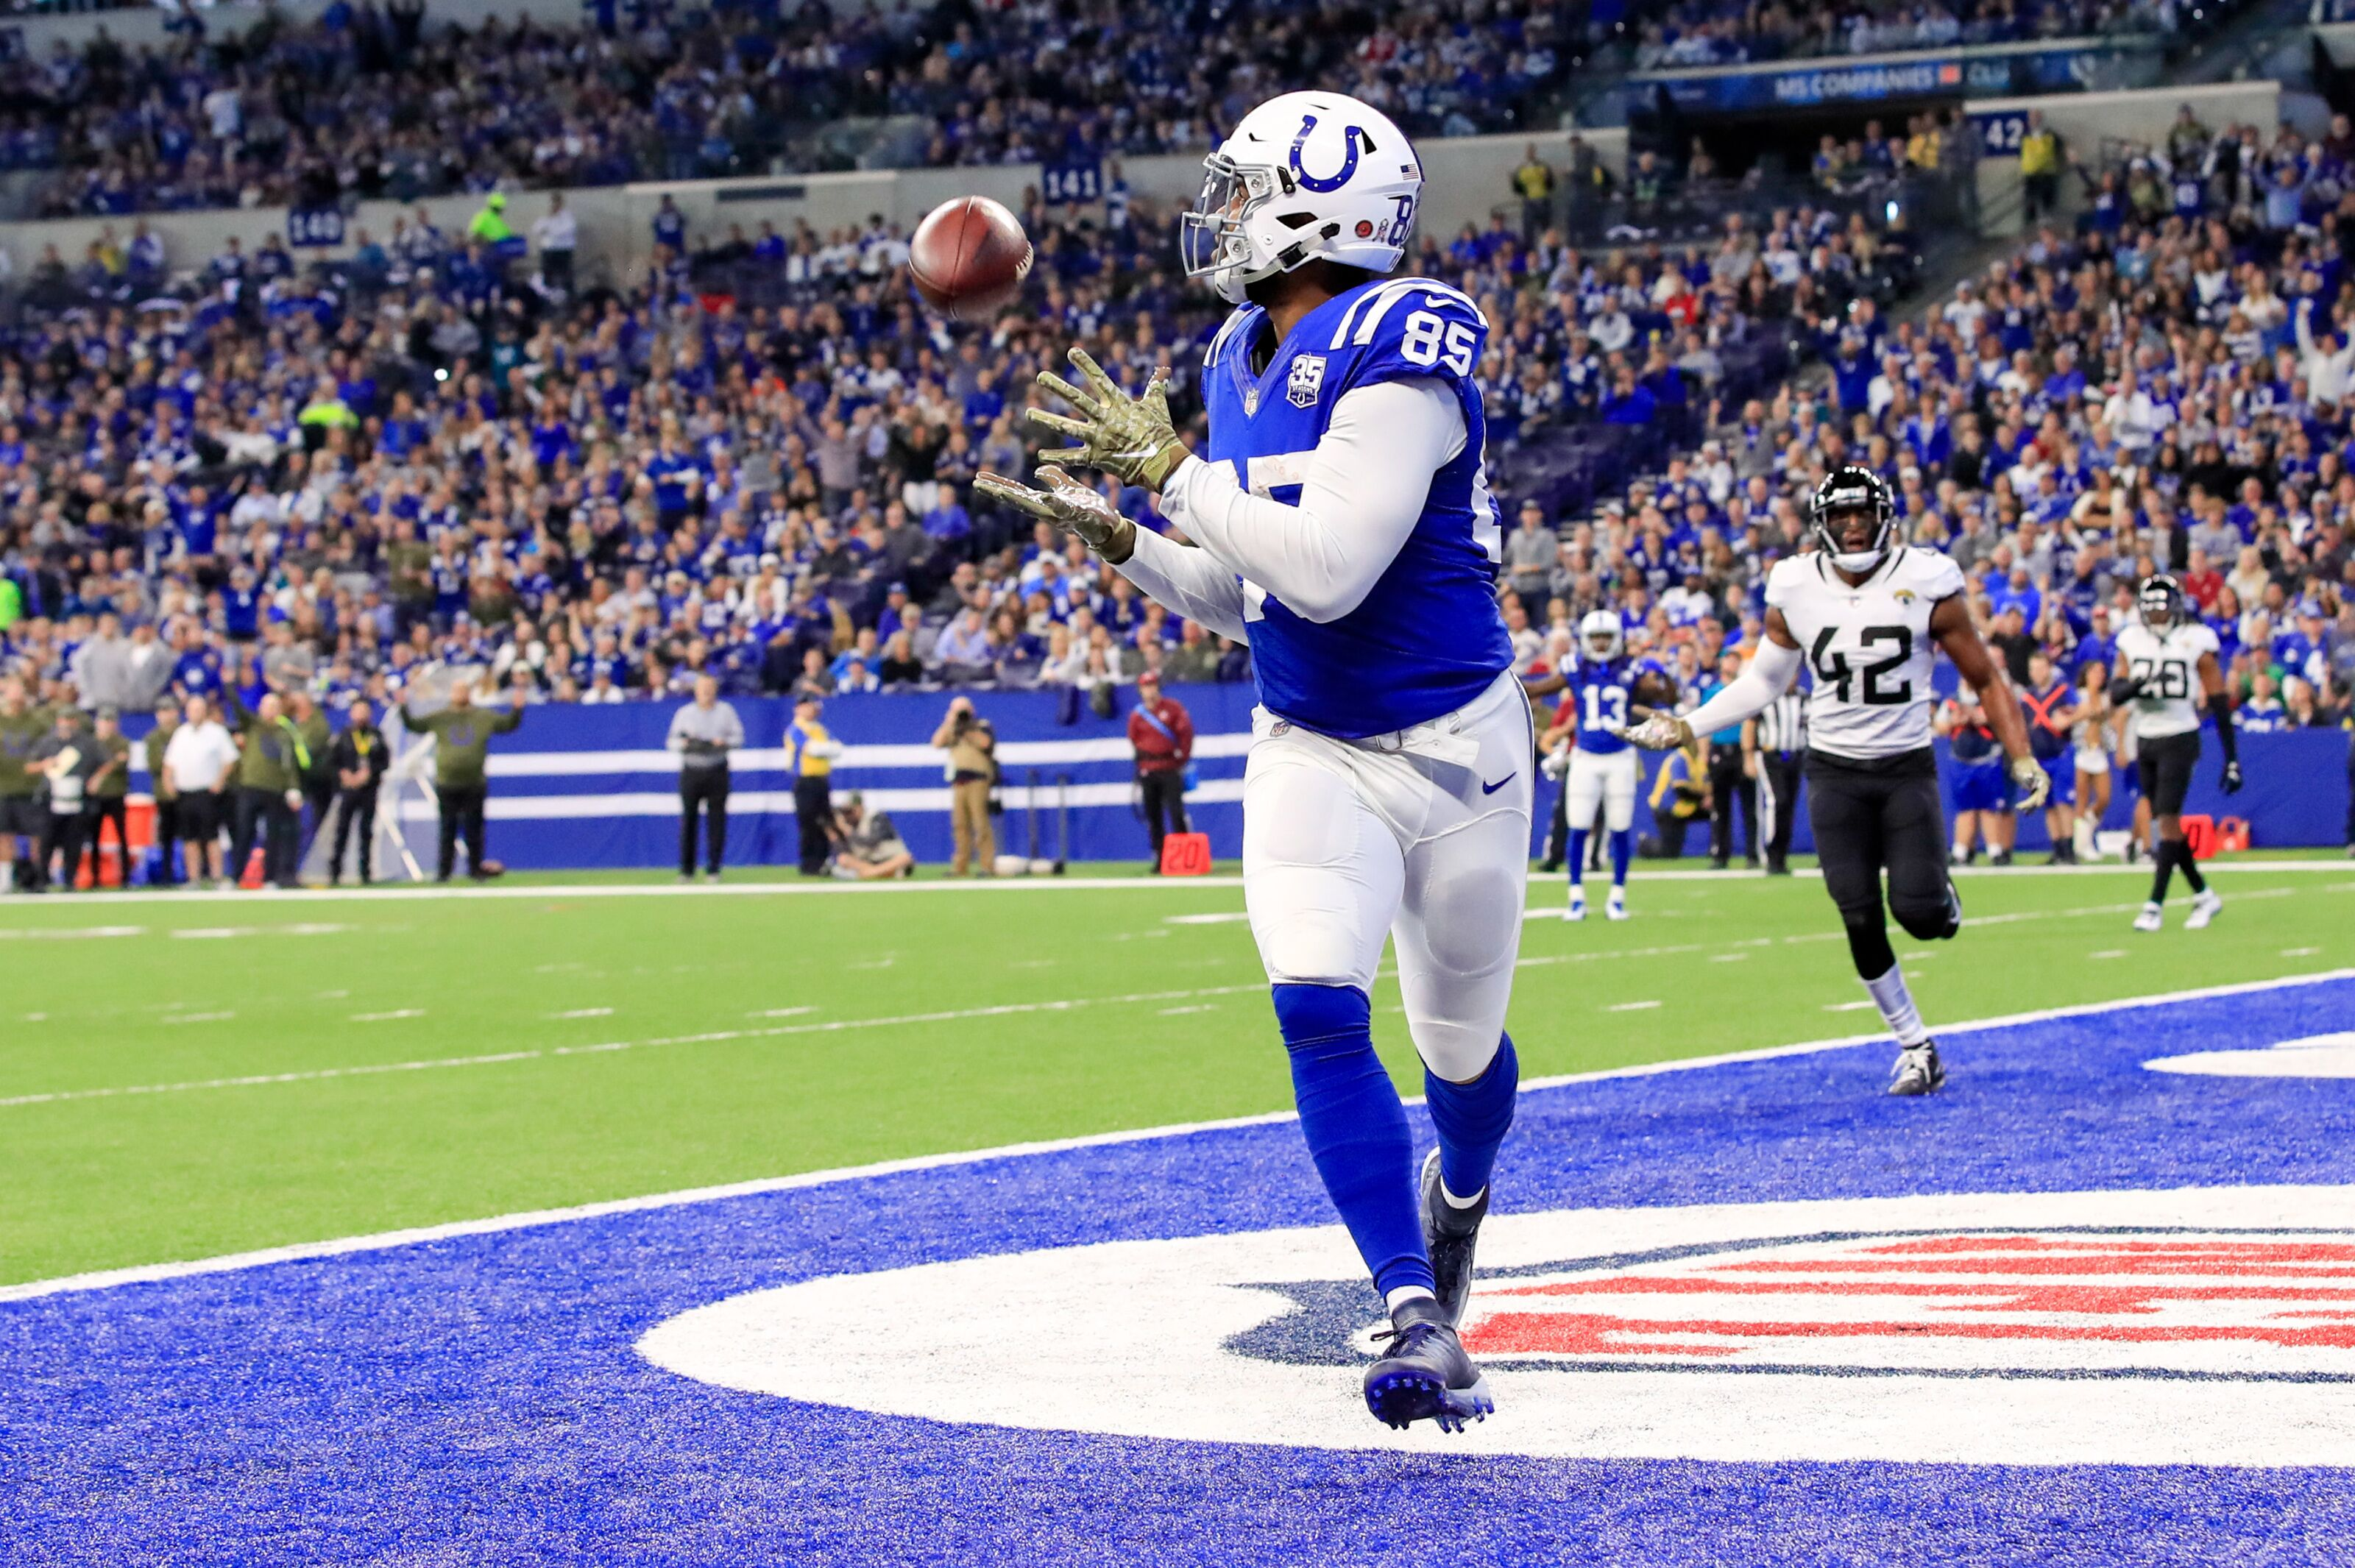 Colts need to keep up good play in red zone